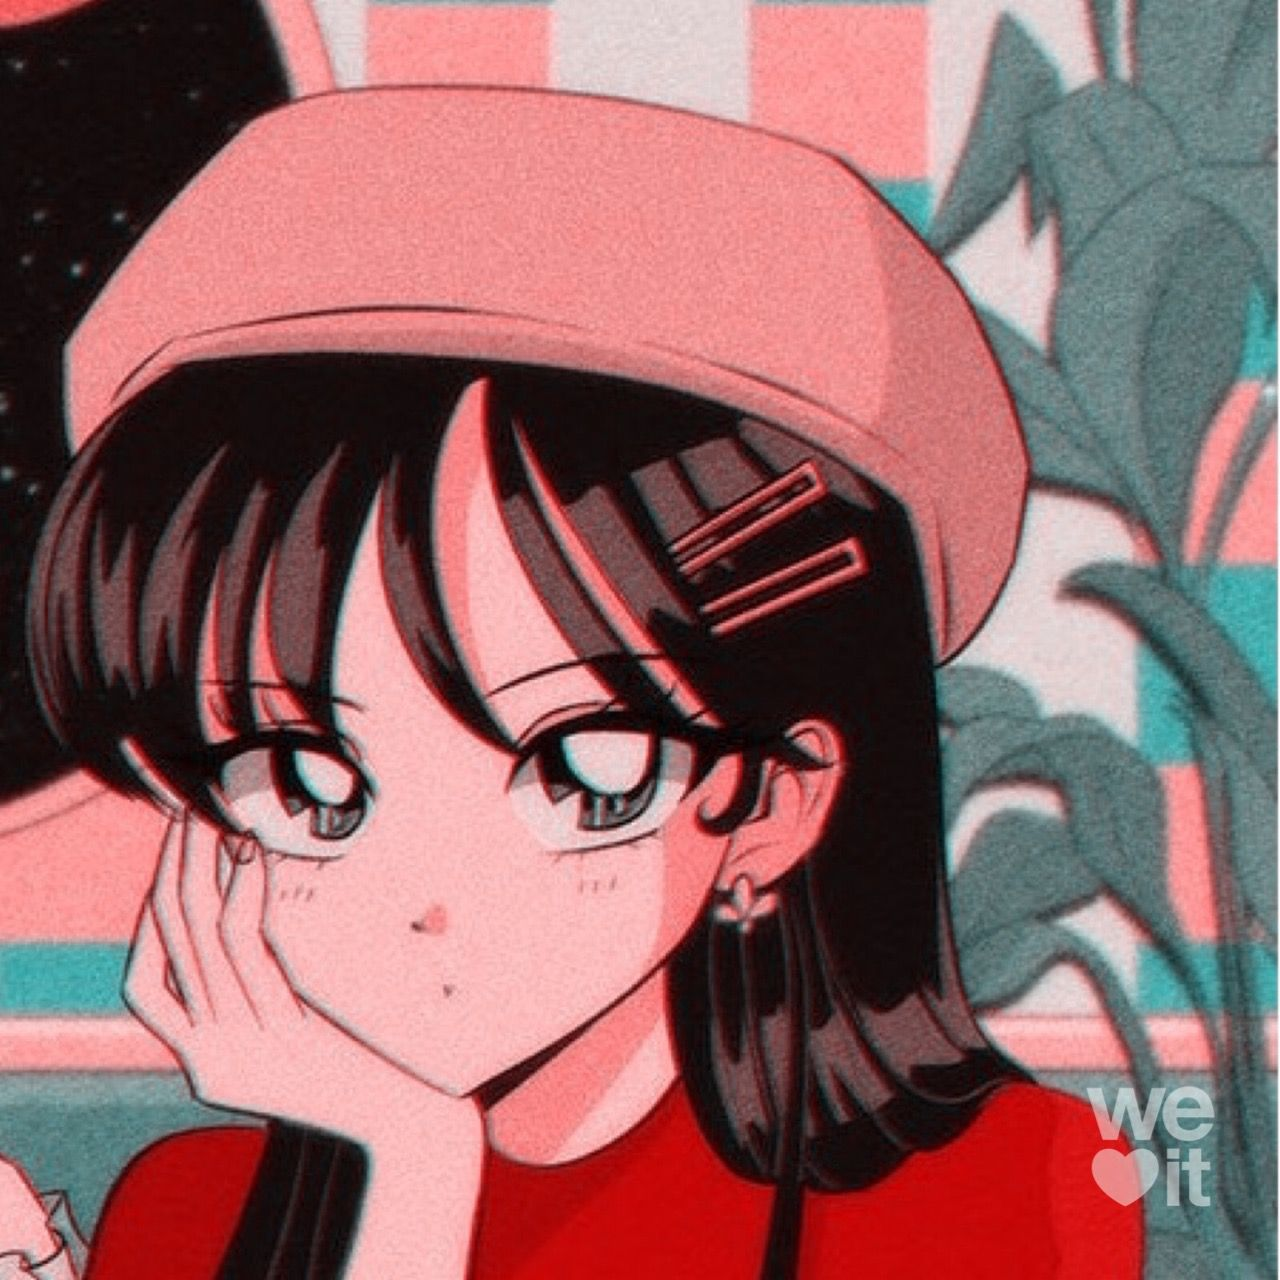 Pin by 🍡 on ˒ anime aesthetic in 2020 Anime, Zombie prom